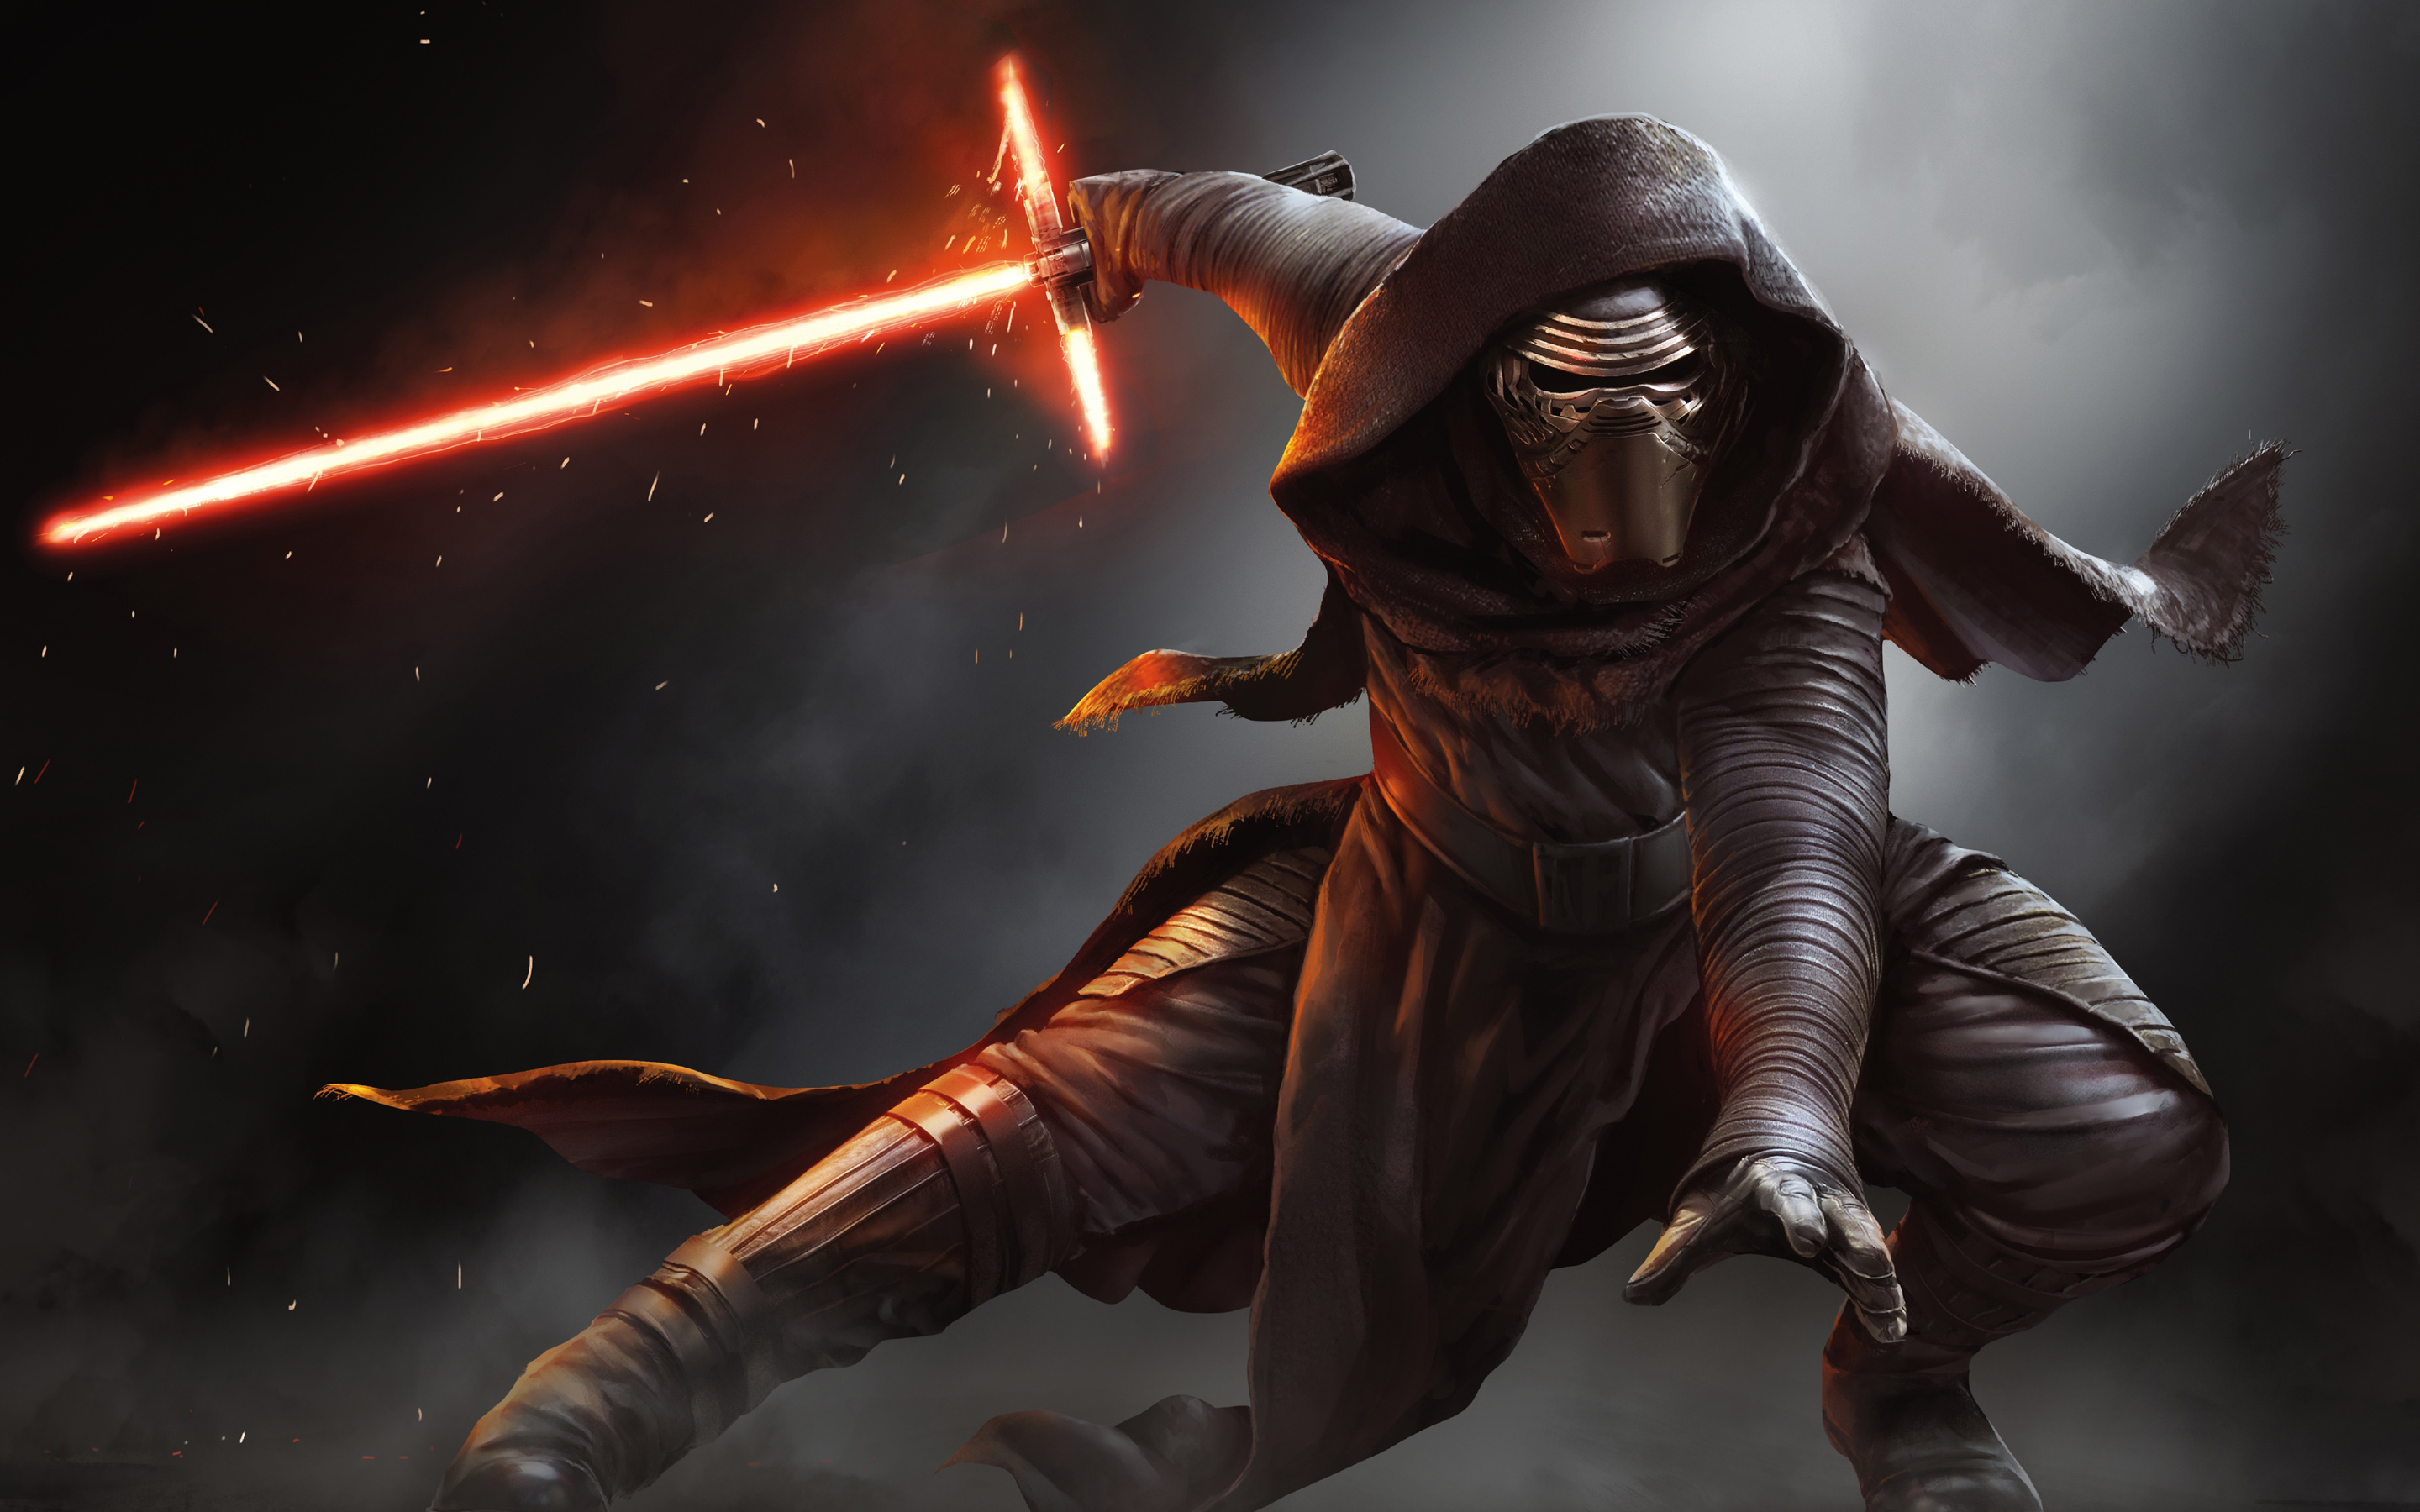 kylo_ren_star_wars-wallpaper